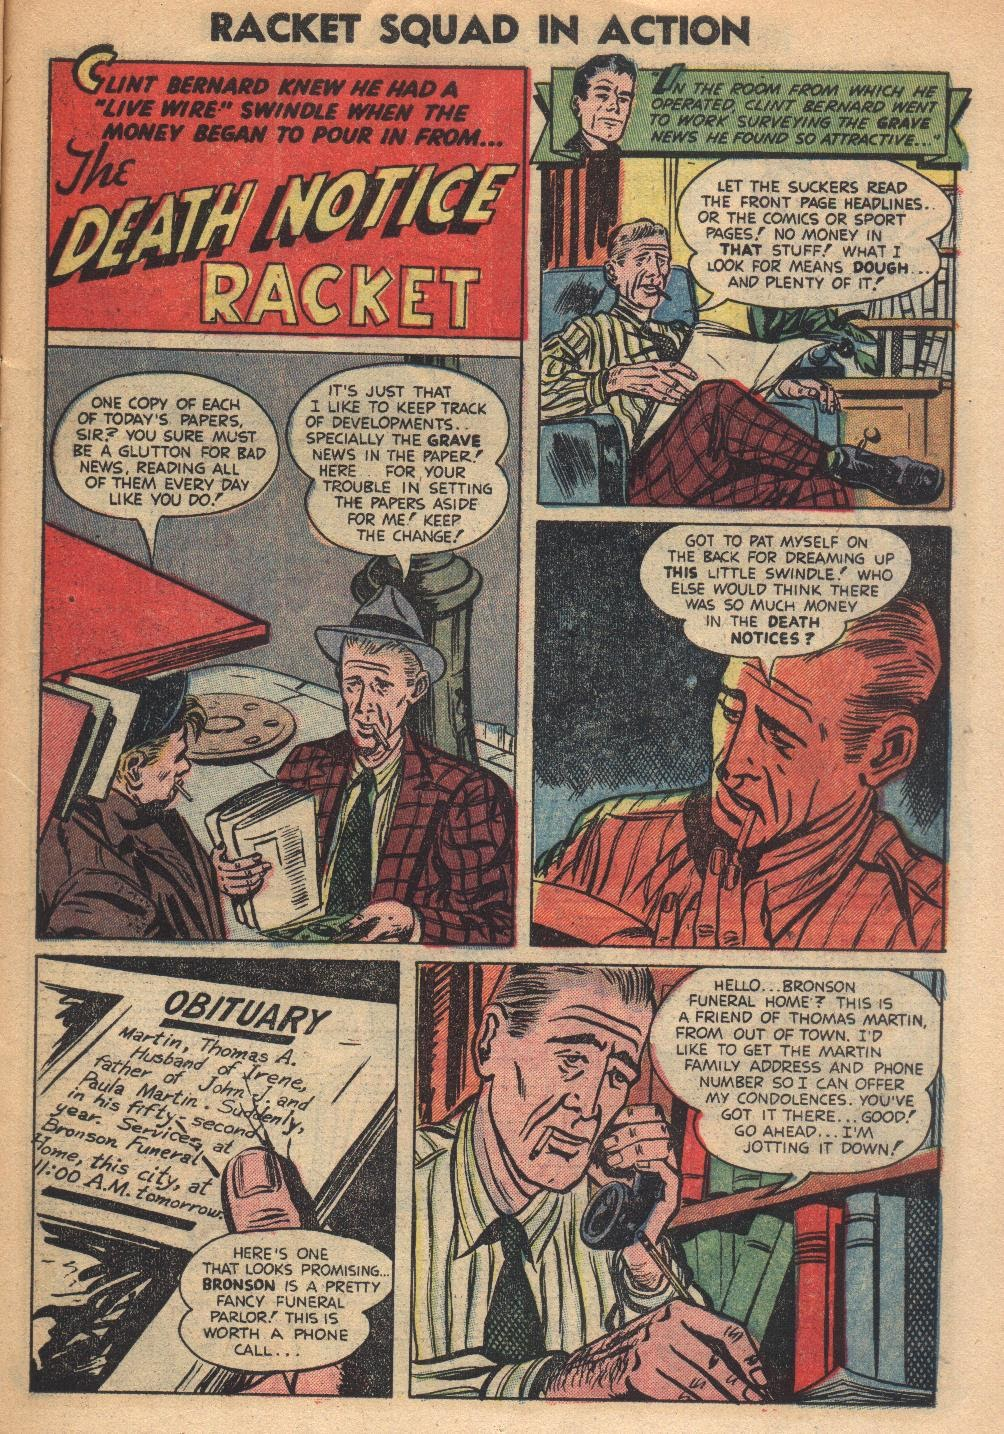 Read online Racket Squad in Action comic -  Issue #8 - 11